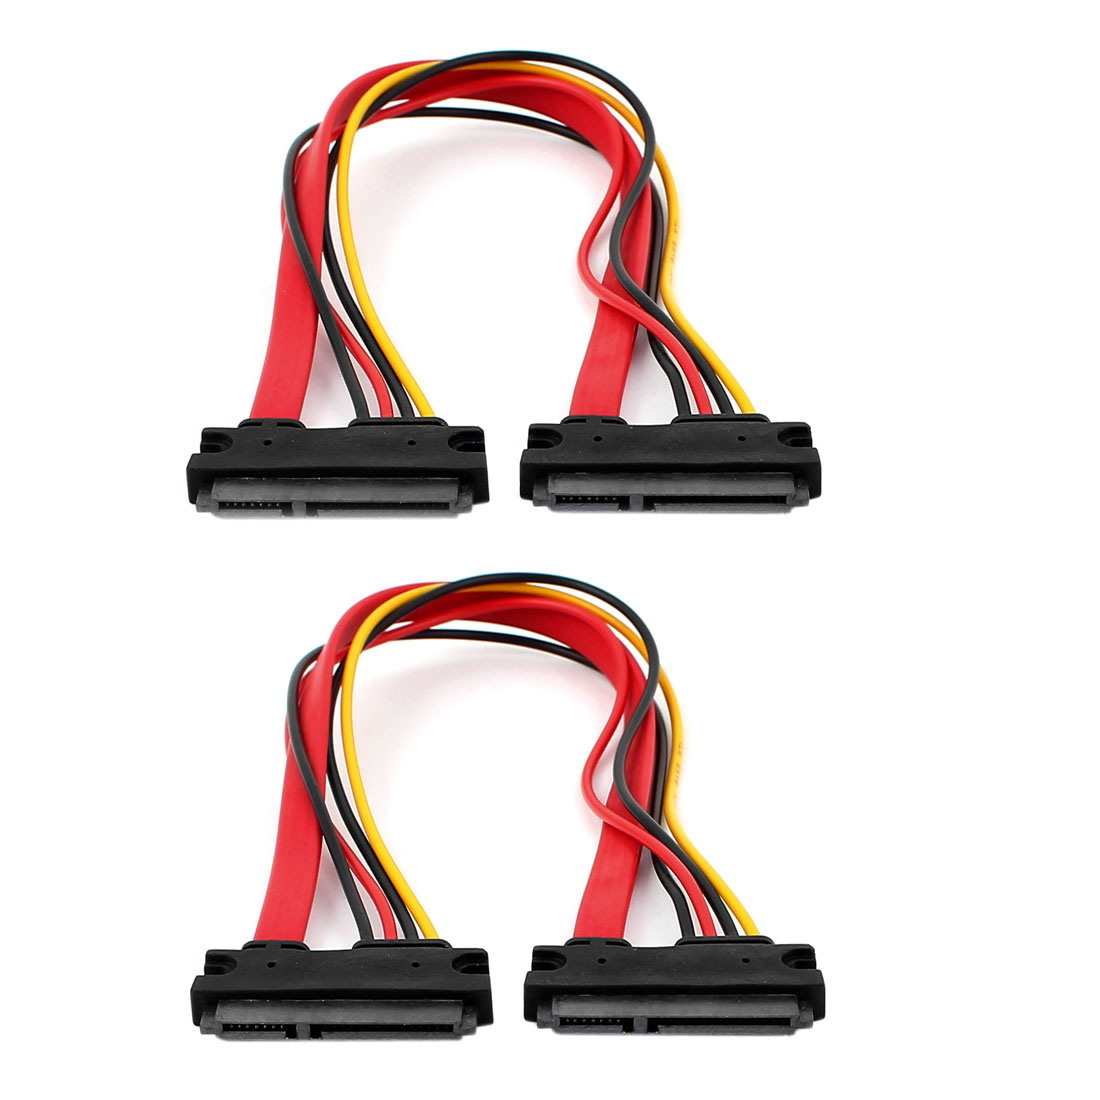 SATA 7+15 Pin Serial Female to Female Connector Data Power Cable 30cm 2Pcs